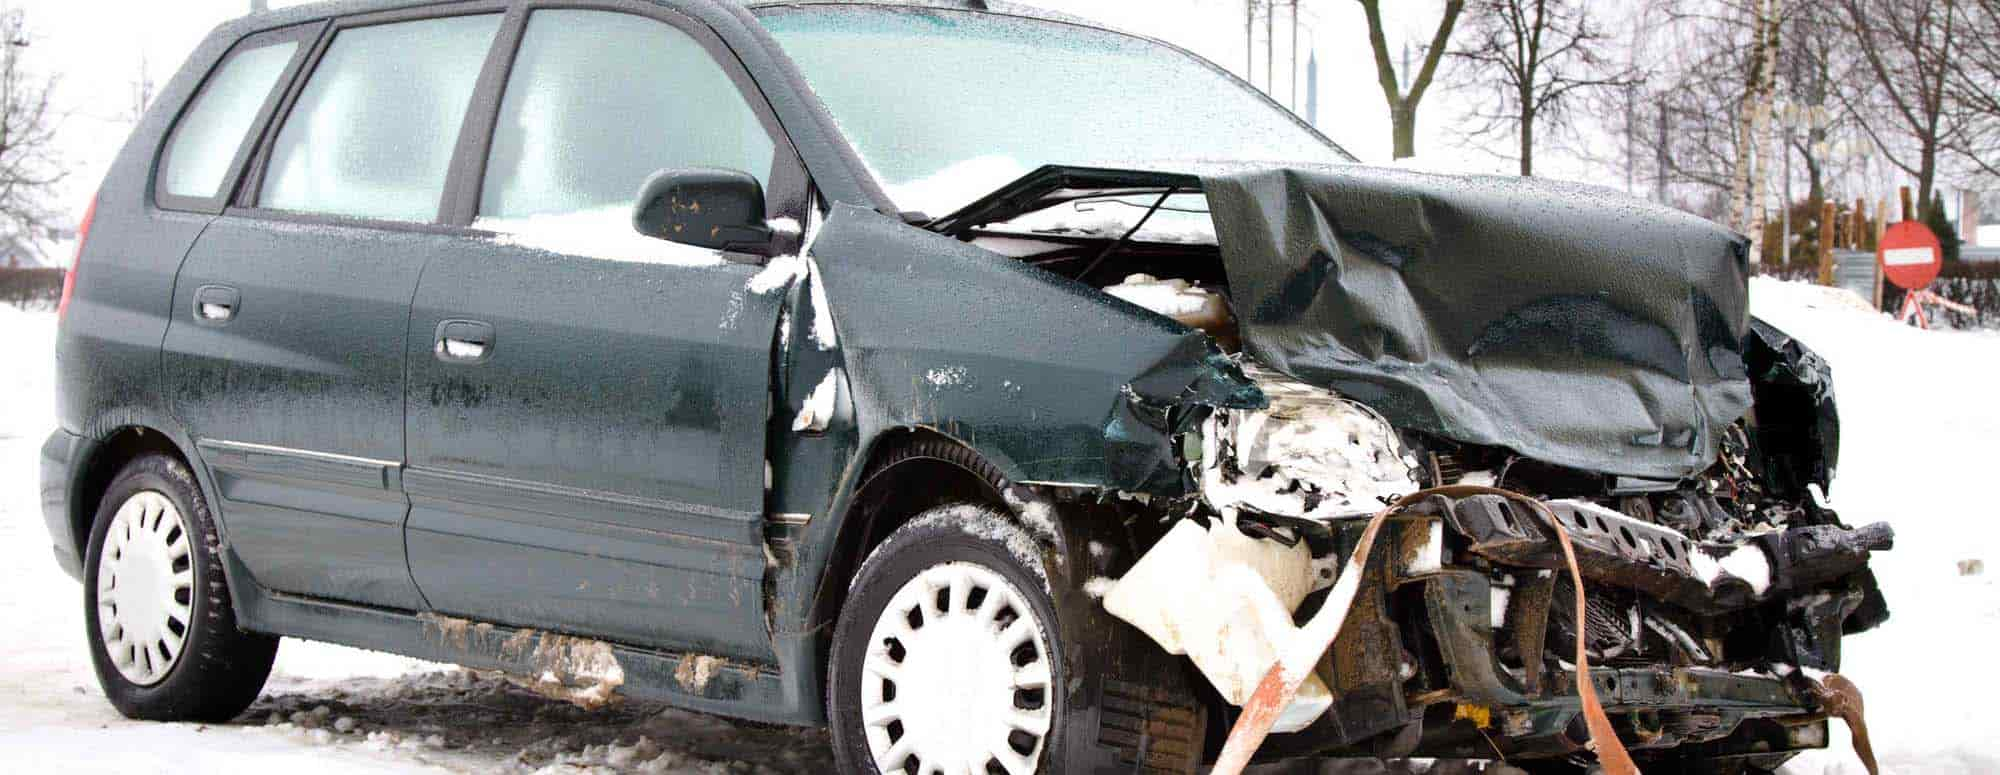 car-accident-linka-law